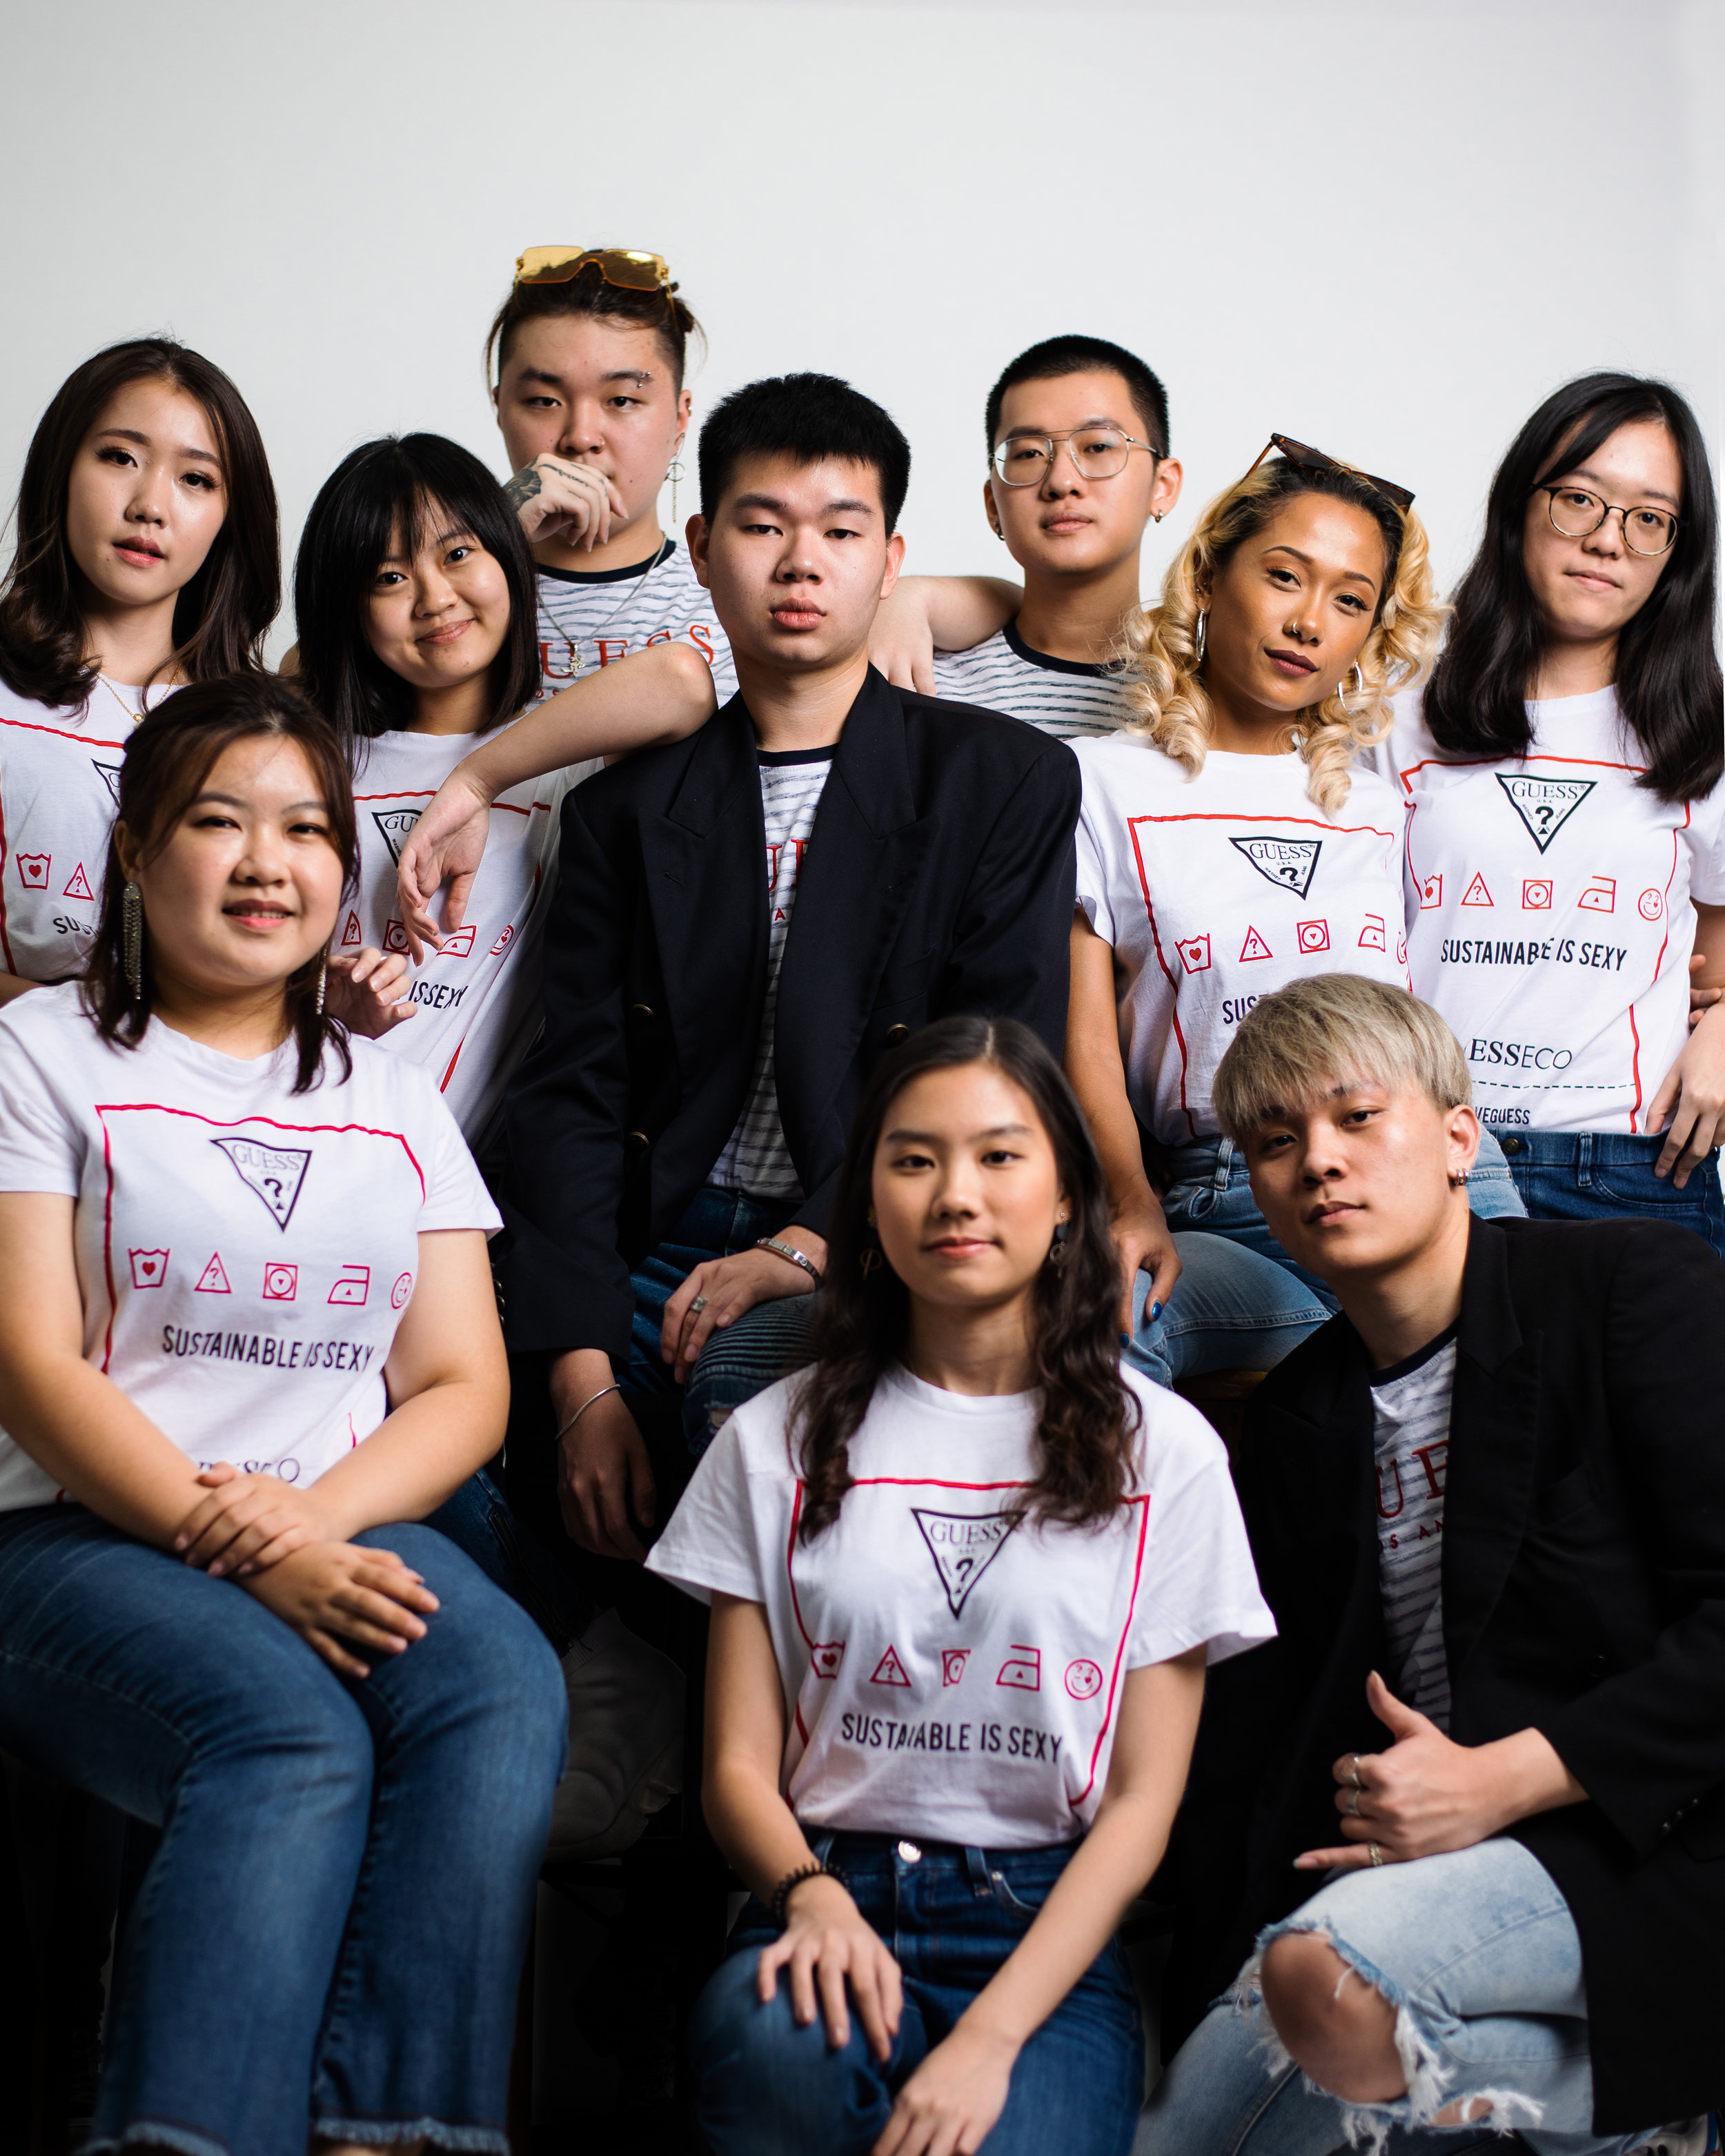 Raffles College of Higher Education KL Young Fashion Design students at Guess Resourced Campaign